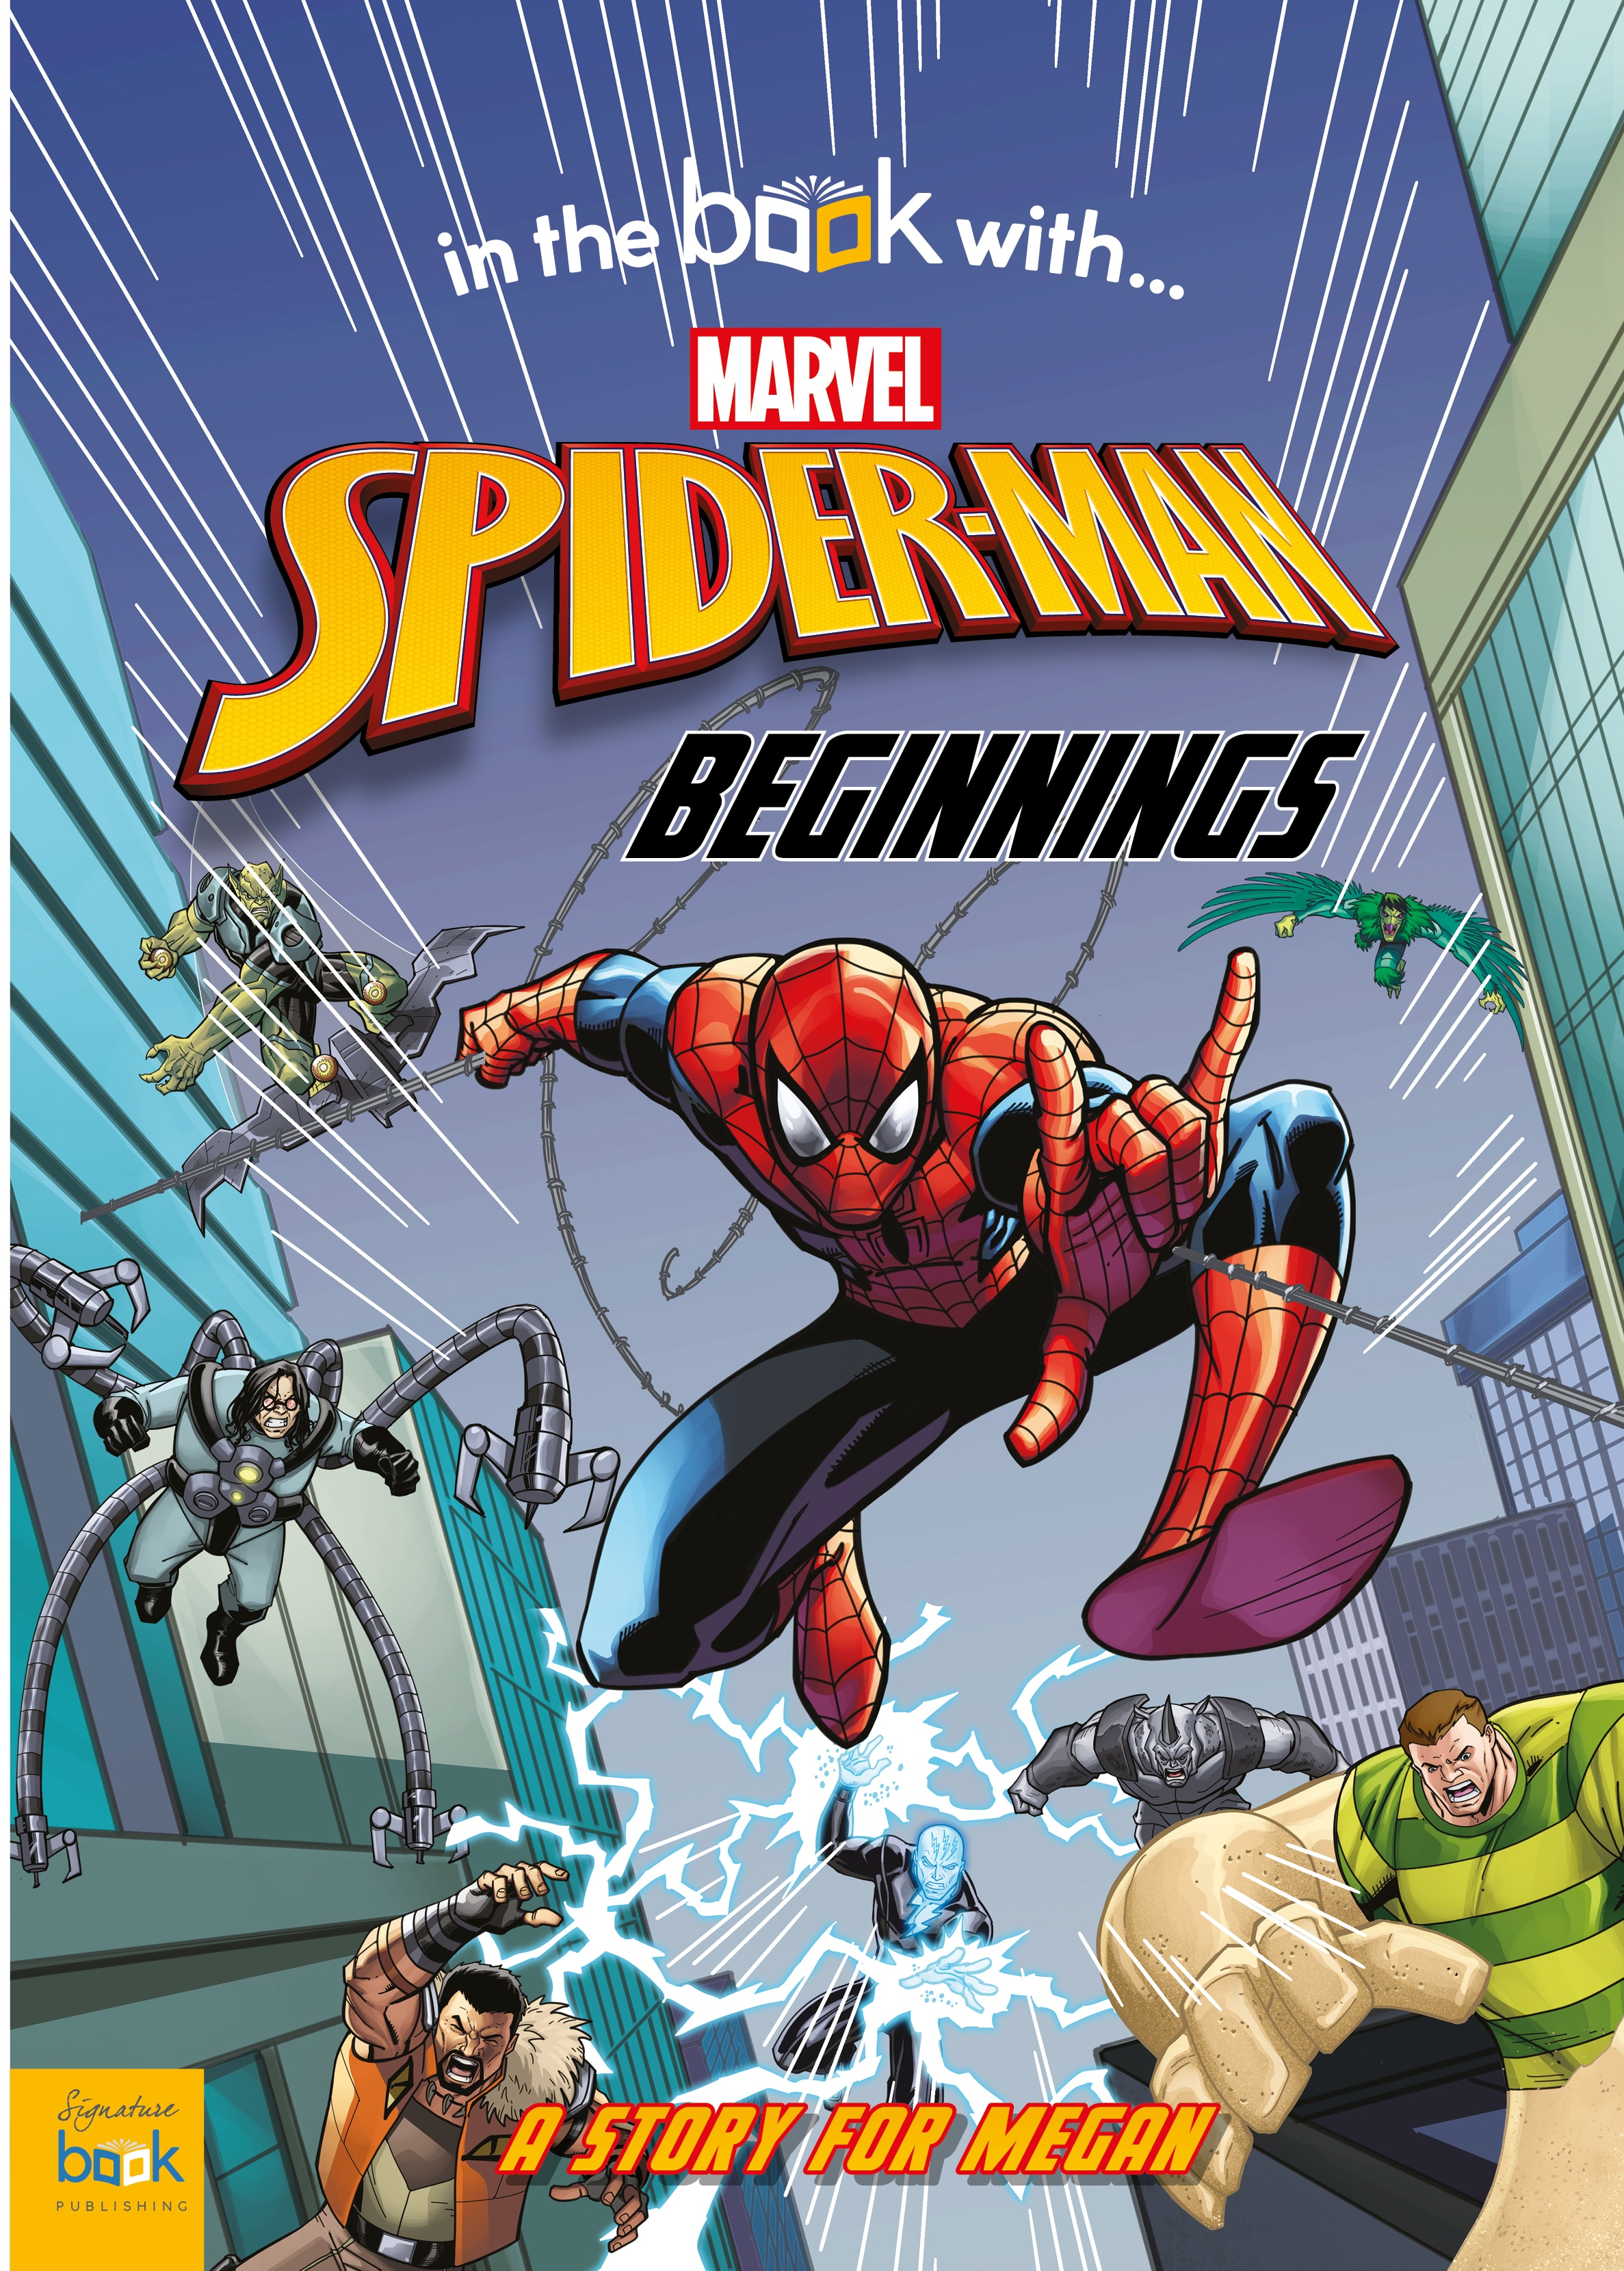 spiderman story book cover